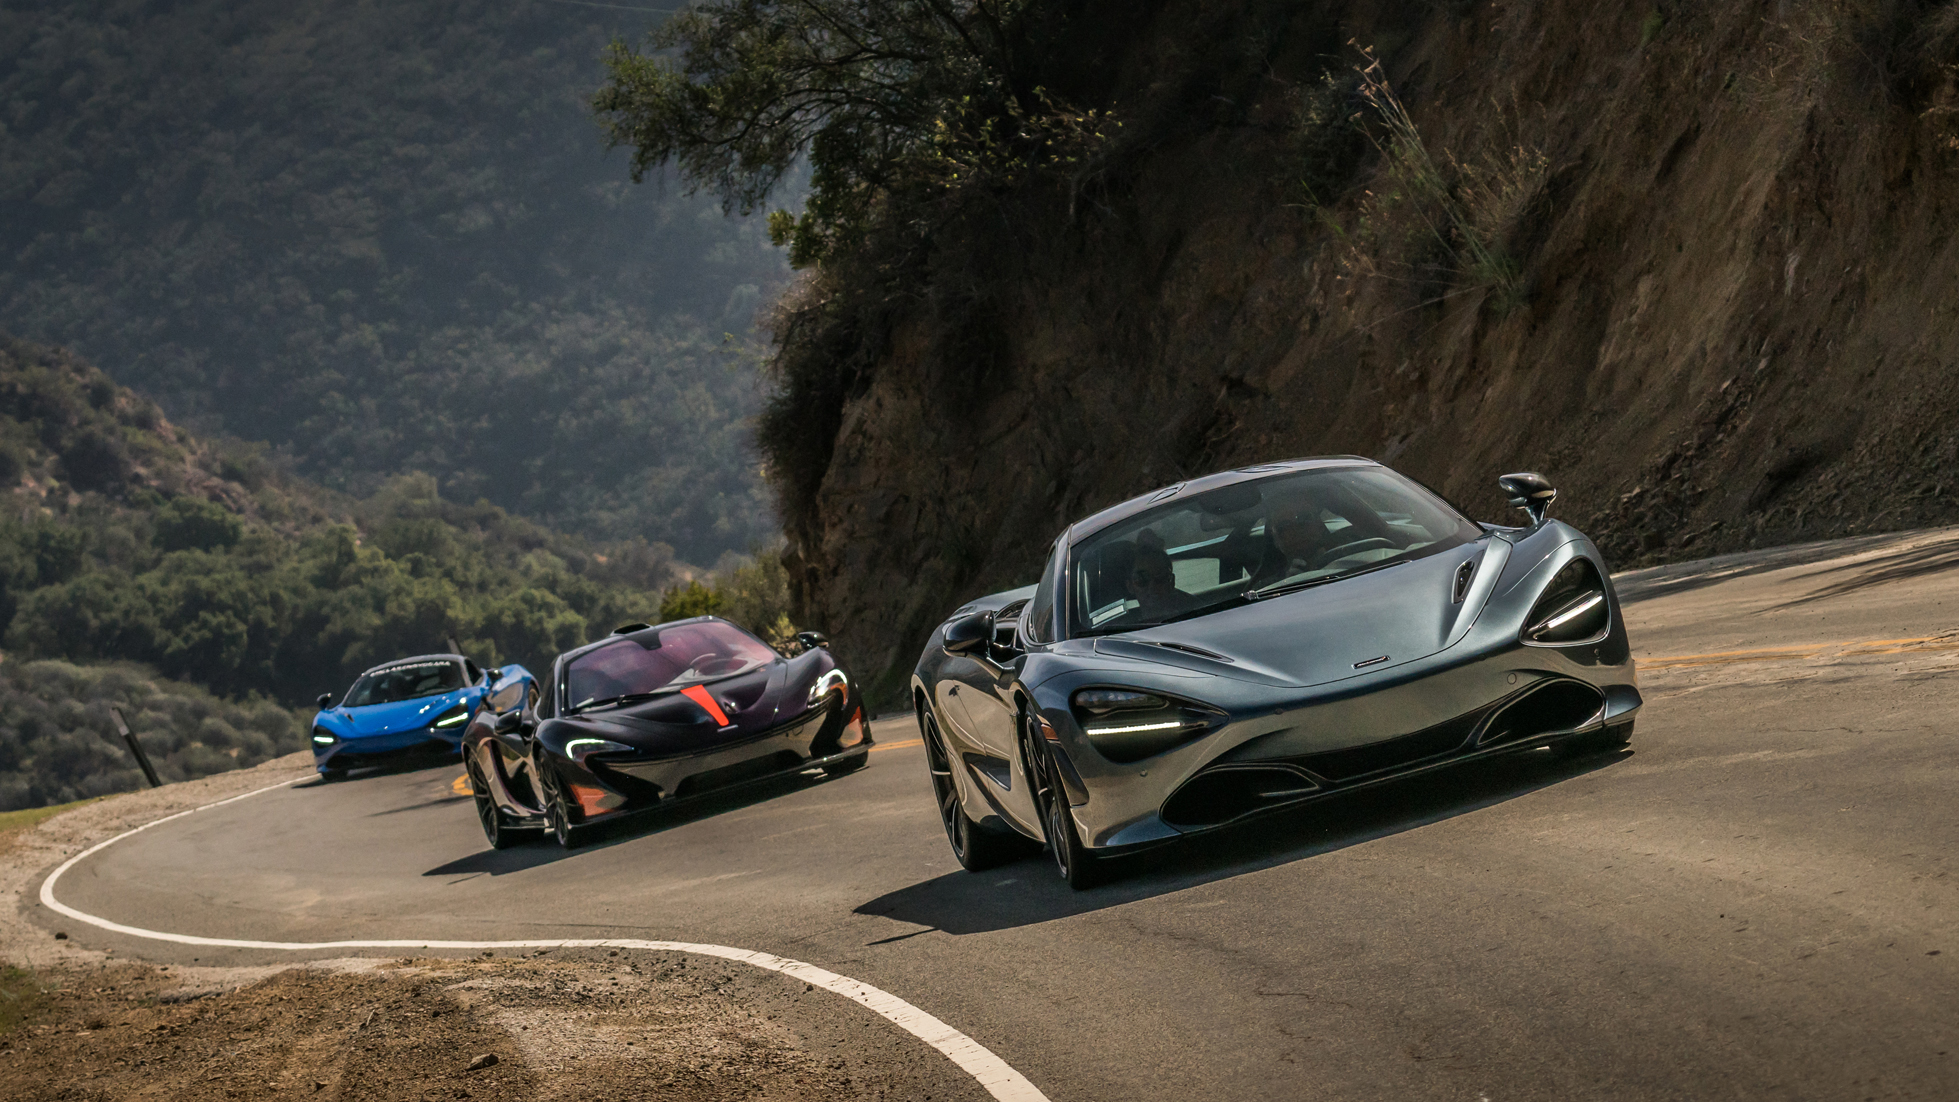 MCLARENS THROUGH MALIBU - MCLAREN BEVERLY HILLS